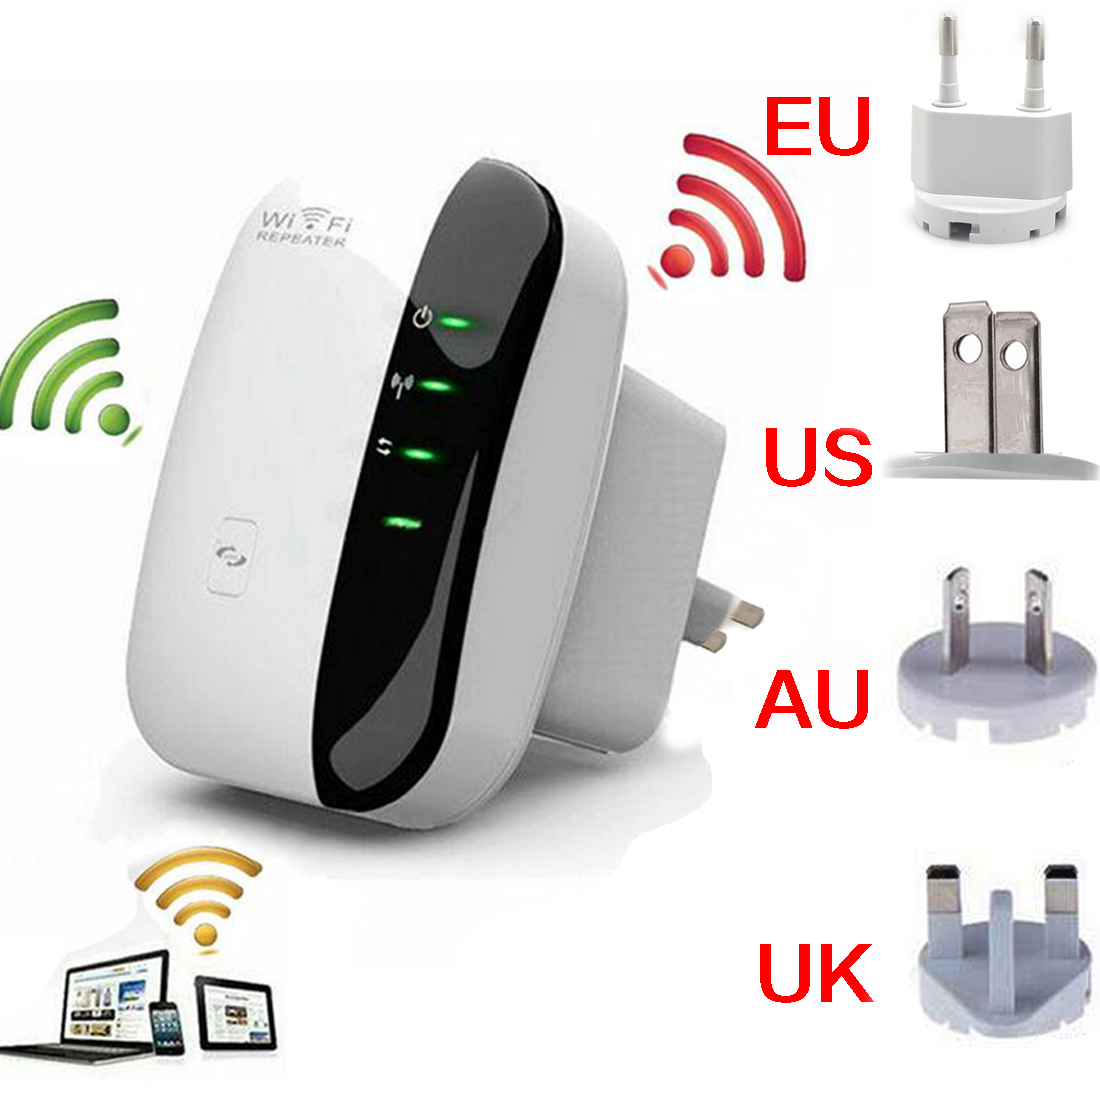 Amplificador repetidor de sinal wifi wireless 300mbps wi fi wi-fi repeater router Internet antenna rede sem fio(China (Mainland))